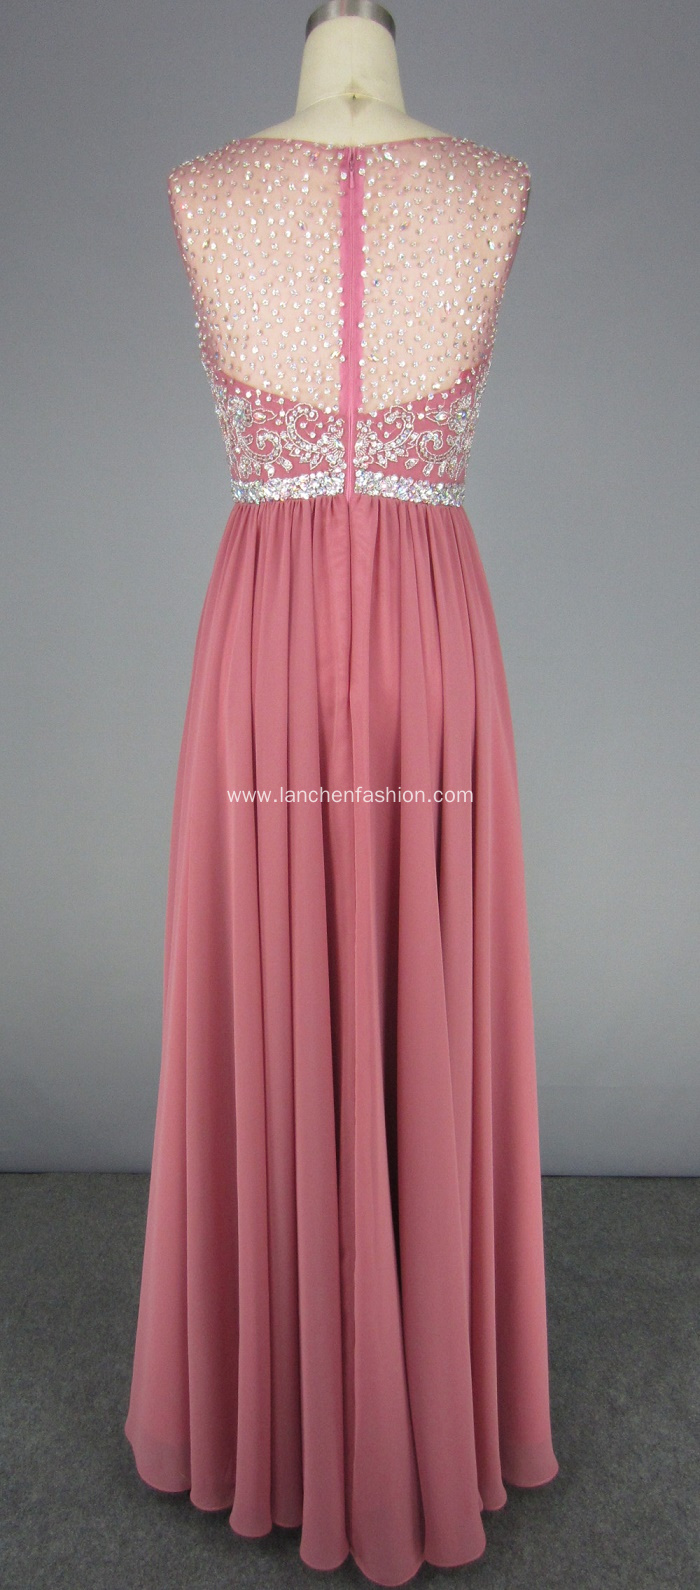 Unique Crystal Beading Prom Dress Style